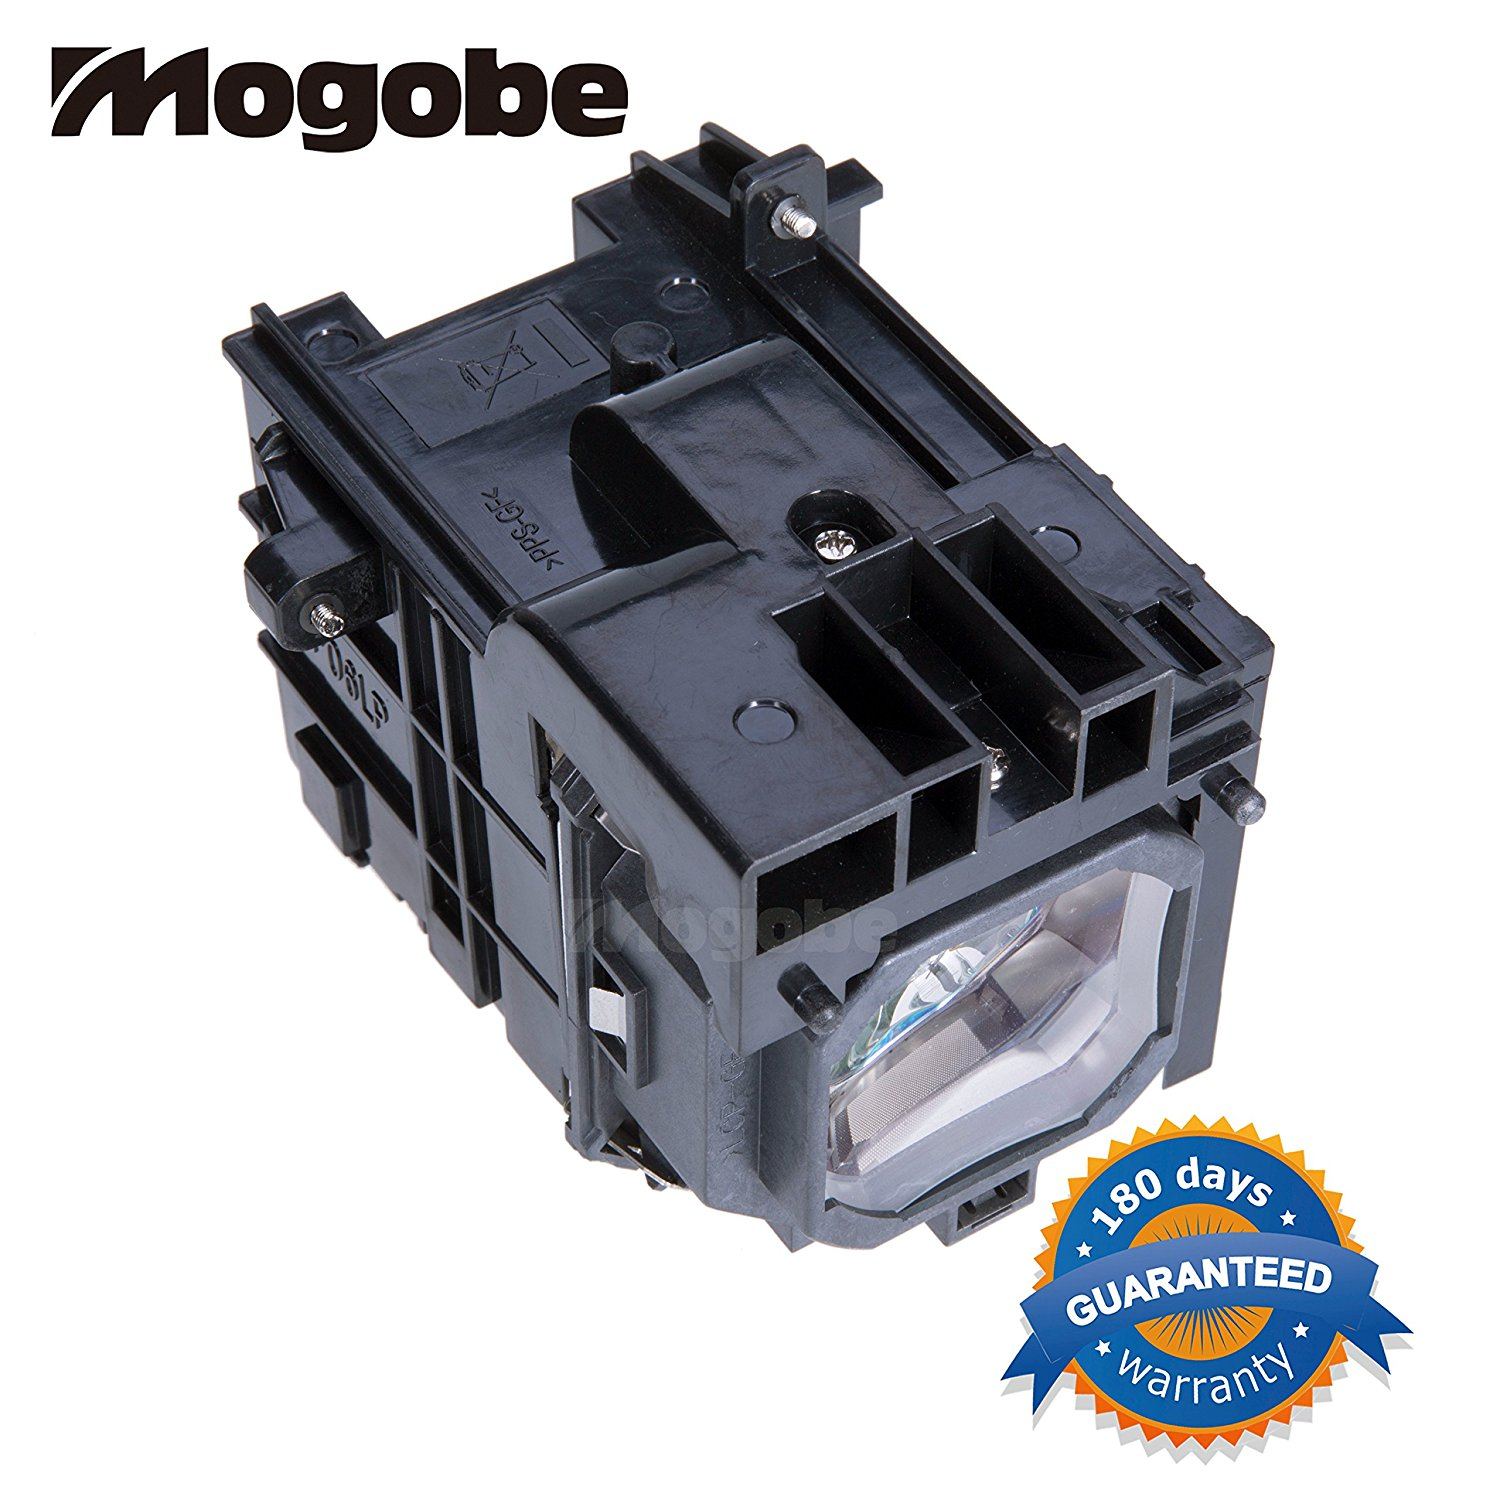 Mogobe NP06LP Compatible Projector Lamp with Housing for Nec NP1150 NP1150+ NP1150G2 NP1250 NP1250+ NP1250G2 NP1250W NP2150 NP2150+ NP2150G2 NP2250 NP2250+ NP2250G2 NP3150 NP3150+ NP3150G2 NP3150W NP3151 NP3151+ NP3151W NP3250 NP3250+ NP3250G2 NP3250W NP3250WG2 NP3251 NP3251W P2150 P2150+